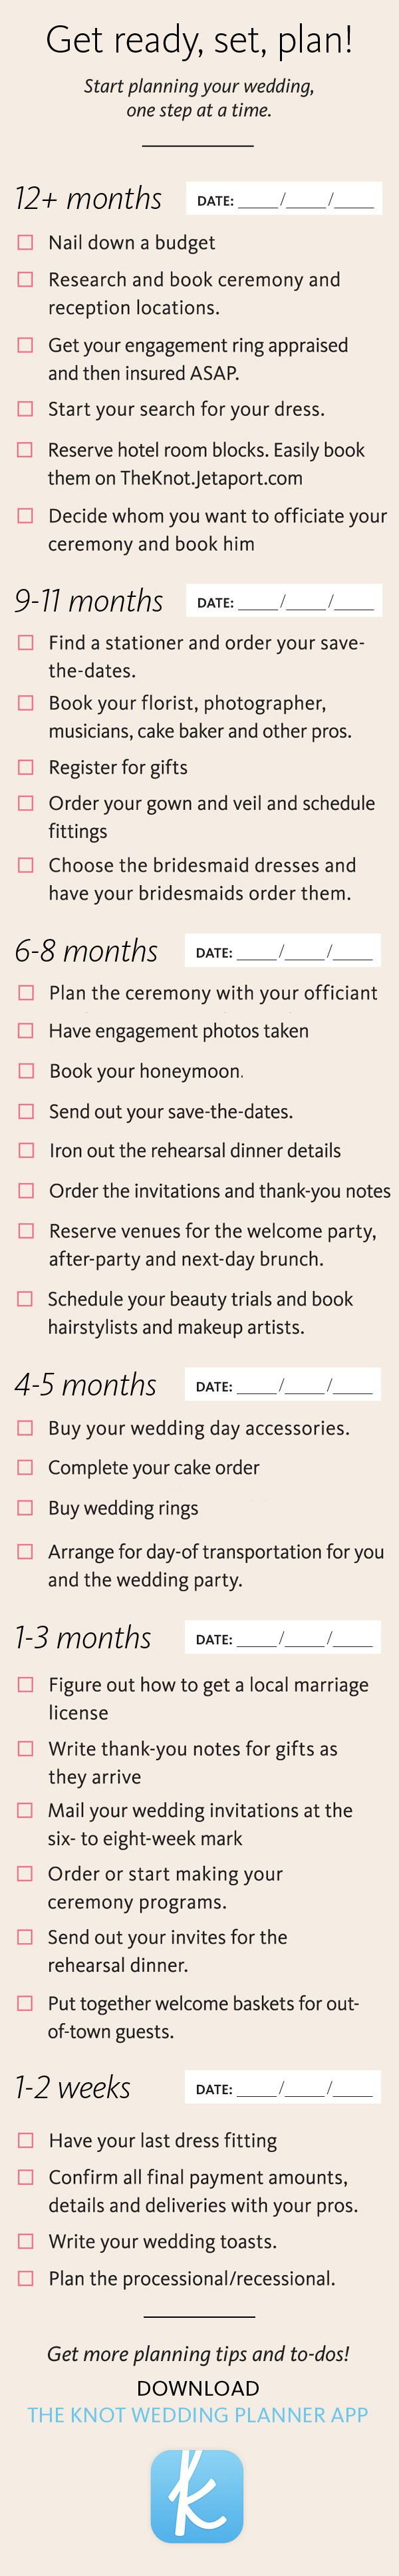 Wedding planning can be a headache, but staying organized is key! Let us help -- print out this list and make sure you're on your way to the perfect day!